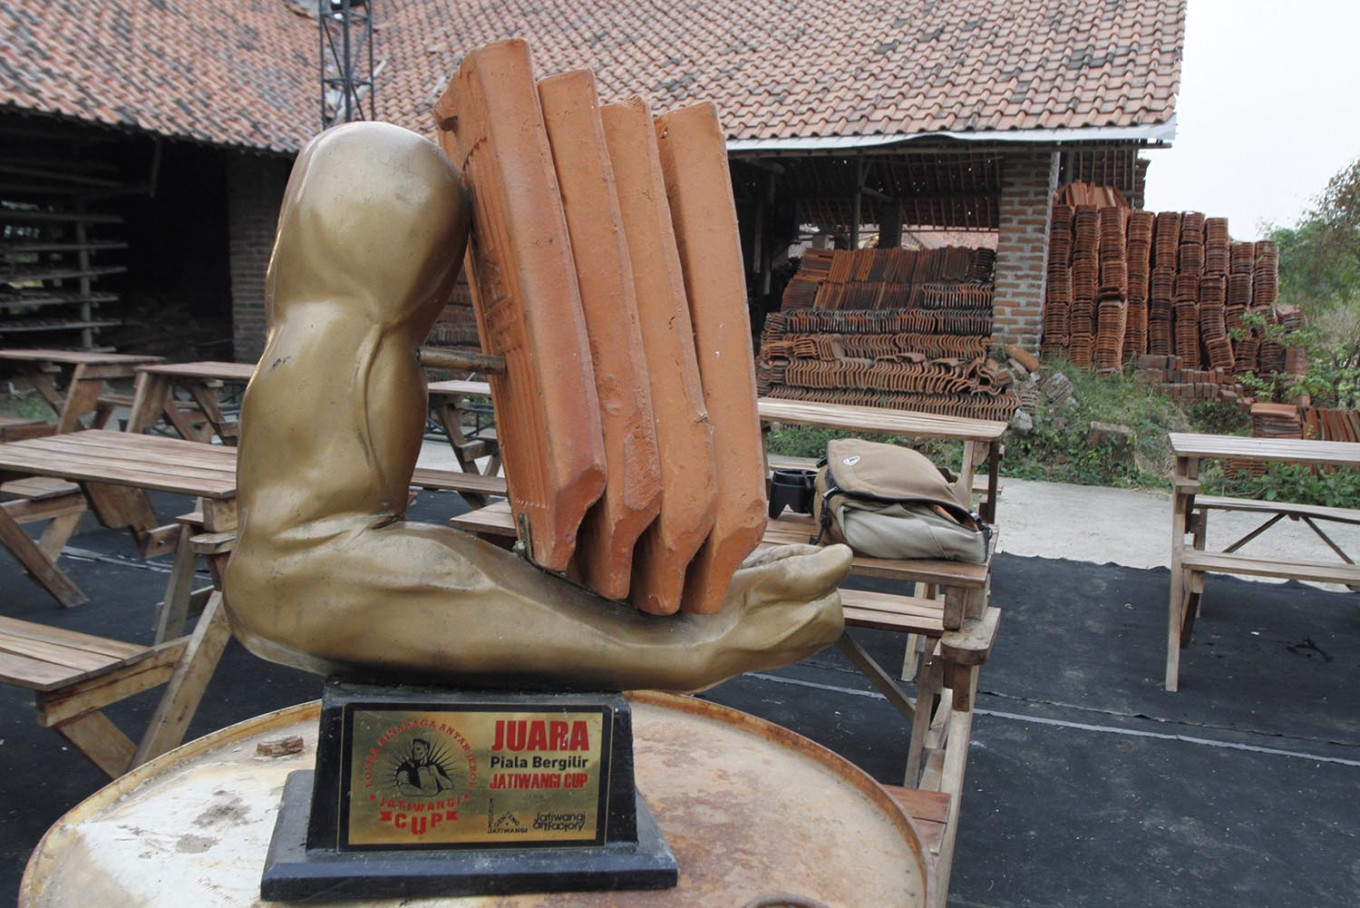 The 2019 Jatiwangi Cup bodybuilding championship for jebor workers offers total prizes worth Rp 10 million and a rotating trophy presented by the Jatiwangi Art Factory. The winning jebor has the honor of hosting the championship the following year. JP/Arya Dipa